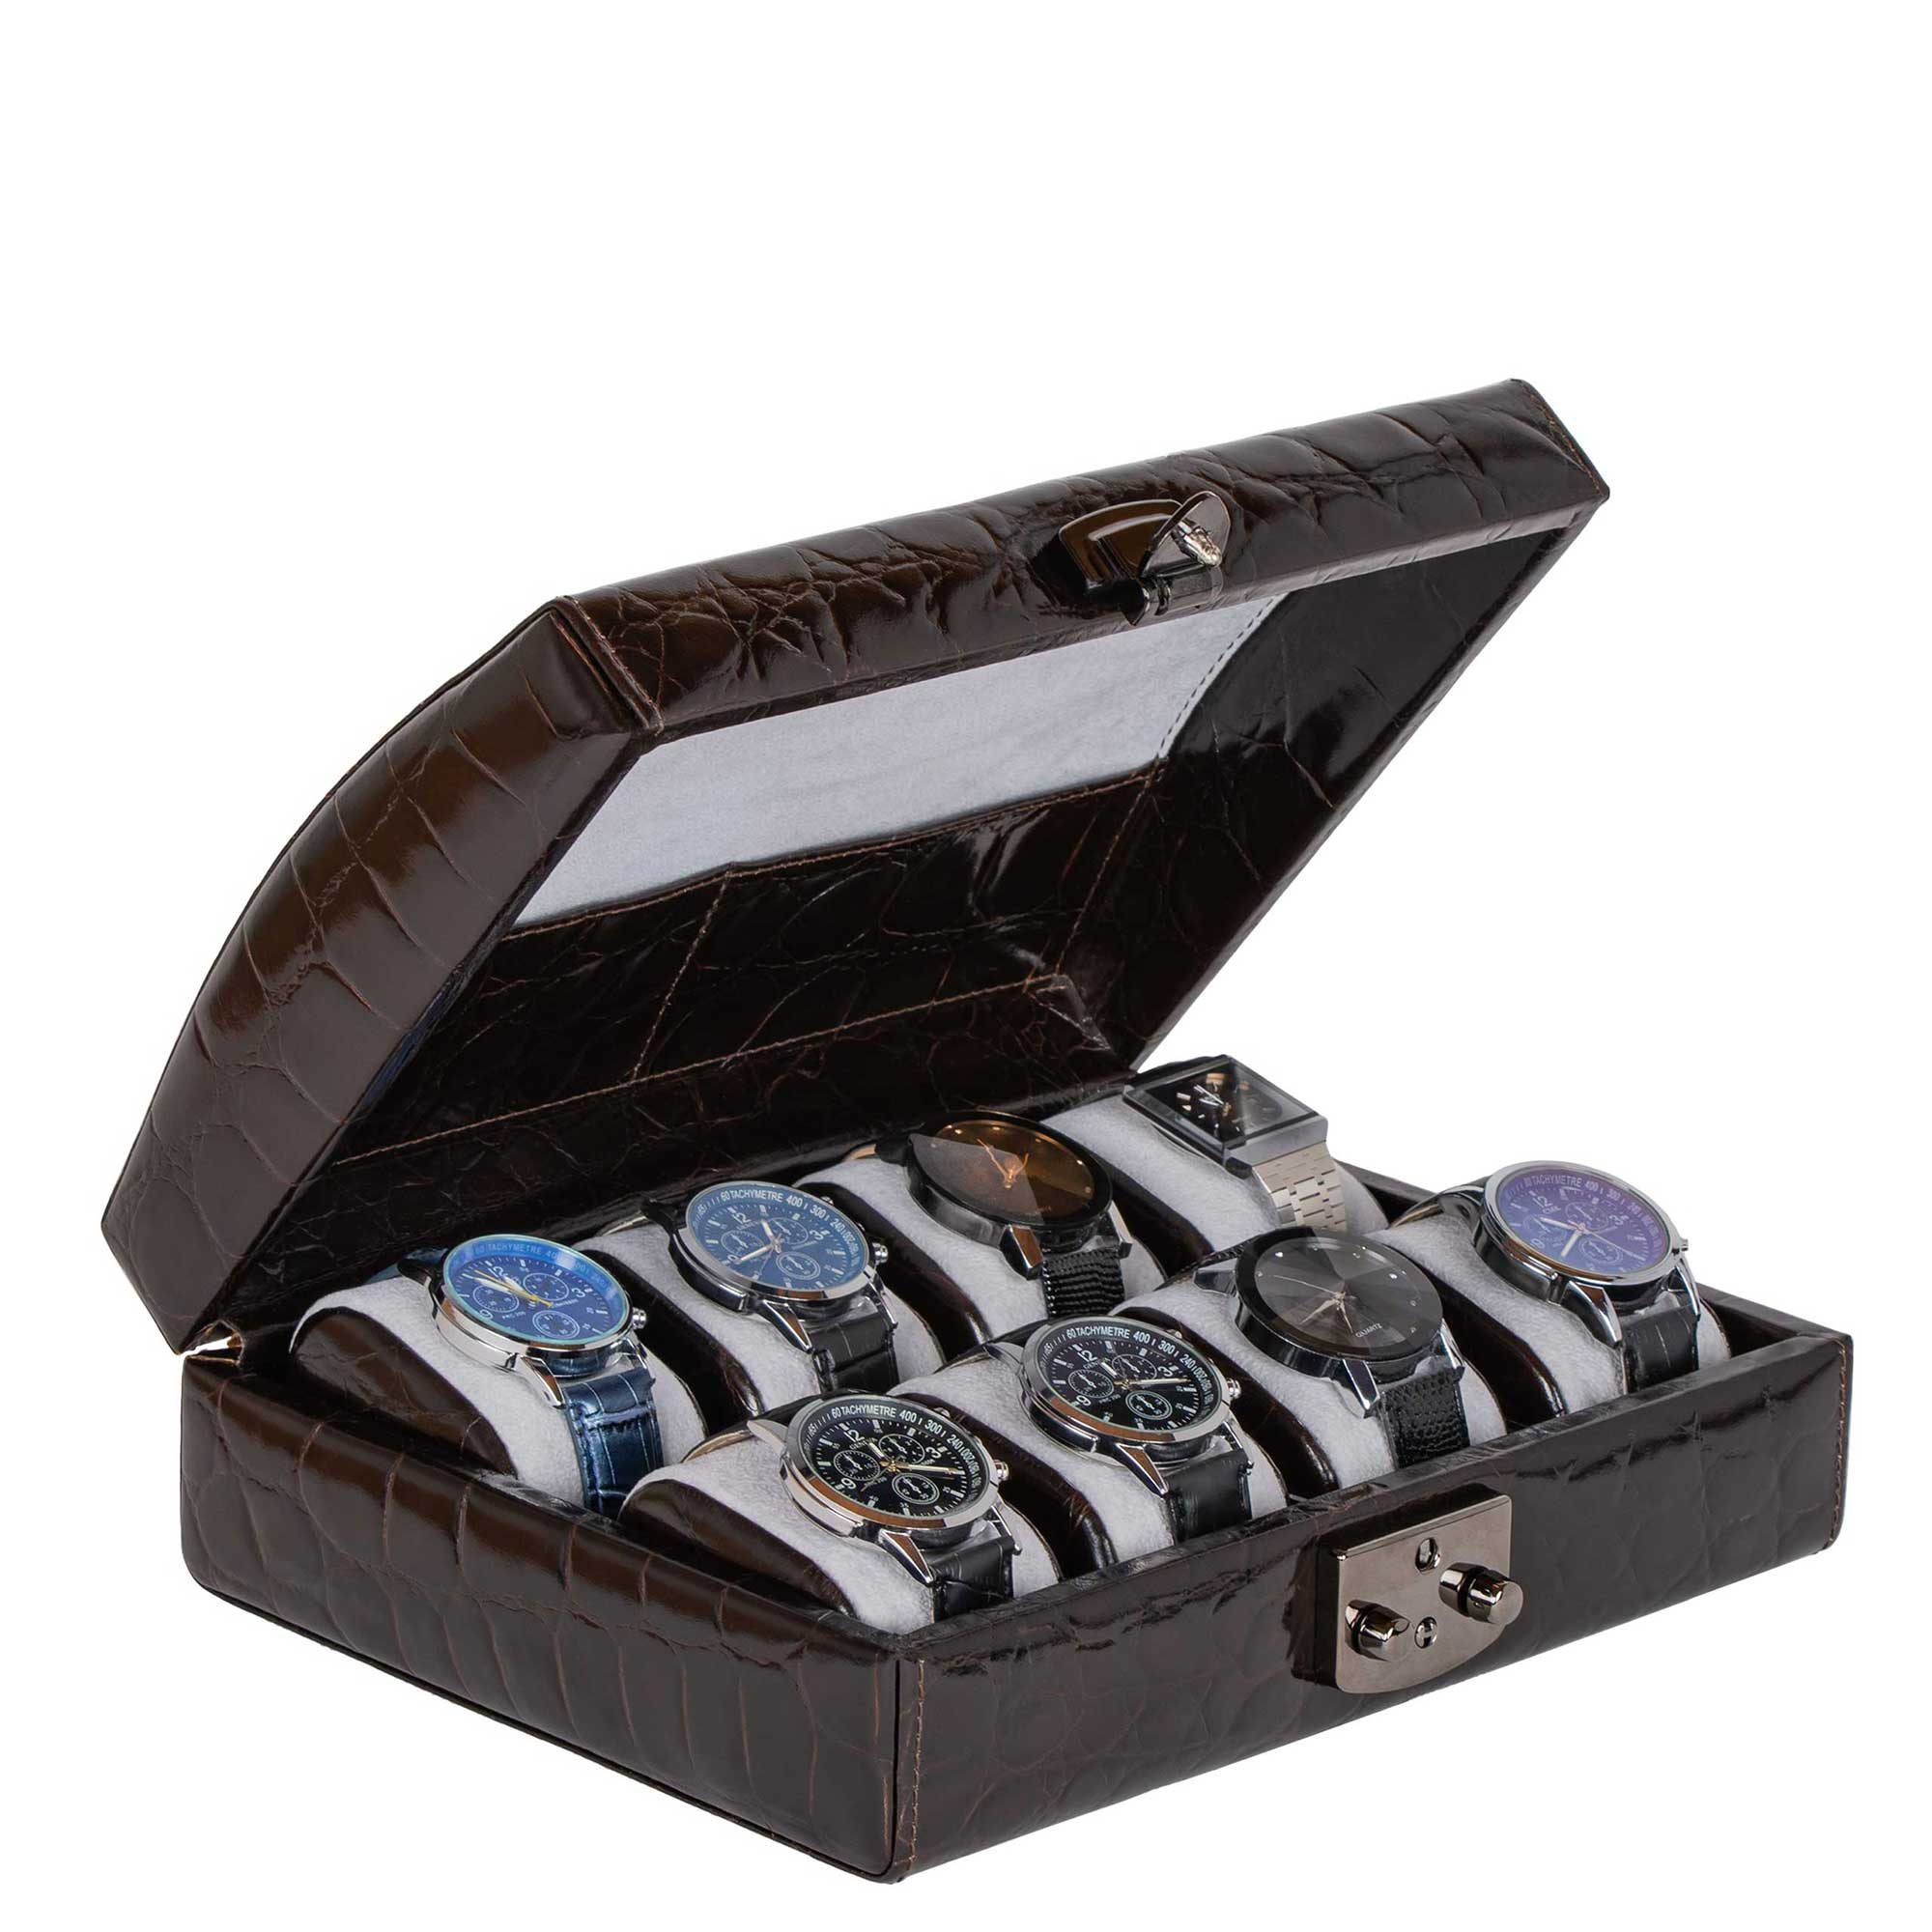 DiLoro Italian Leather Watch Cases 100% Authentic Made in Italy - Designed in Switzerland. Protect your favorite Rolex watch in a beautiful DiLoro leather travel watch case.